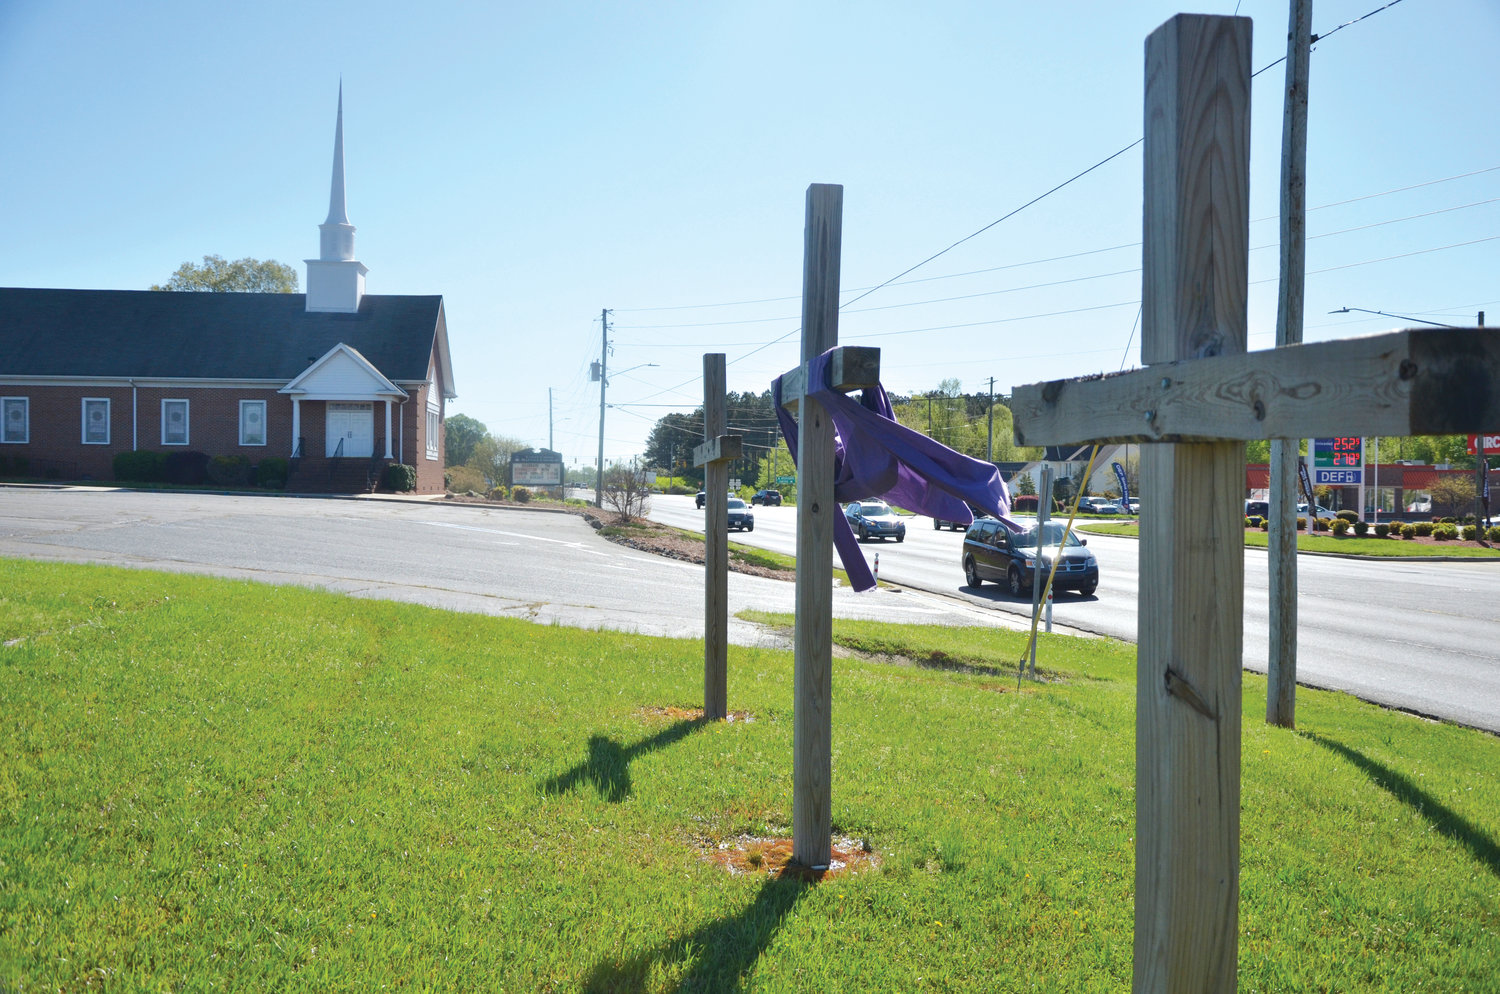 The three crosses on the grounds of Love Creek Baptist Church represent the crucifixion of Jesus. The Easter celebration is one of the most important in the Christian faith, celebrating the resurrection of Christ after his death on the cross.